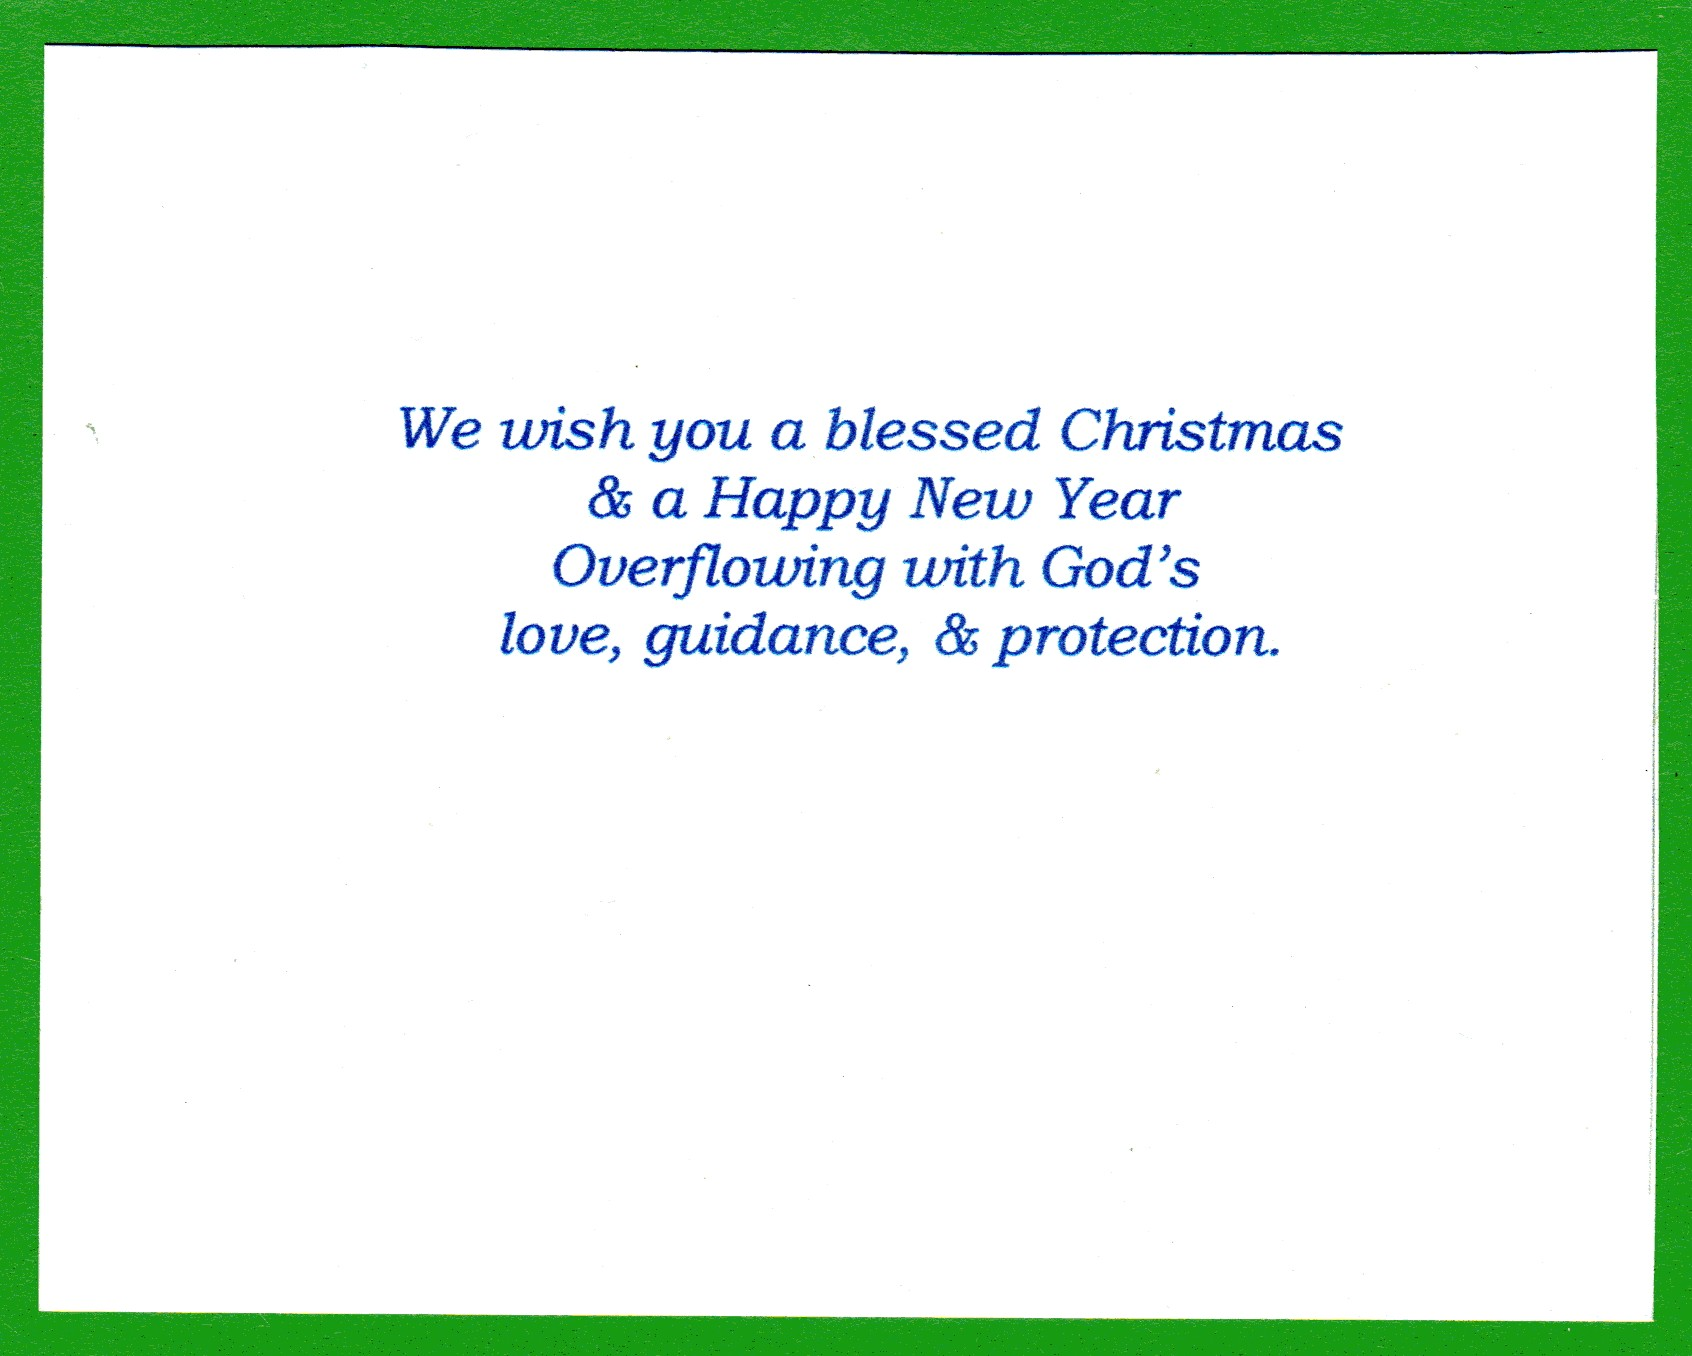 Christmas Card Text Ideas Business ~ All Ideas About Christmas and ...